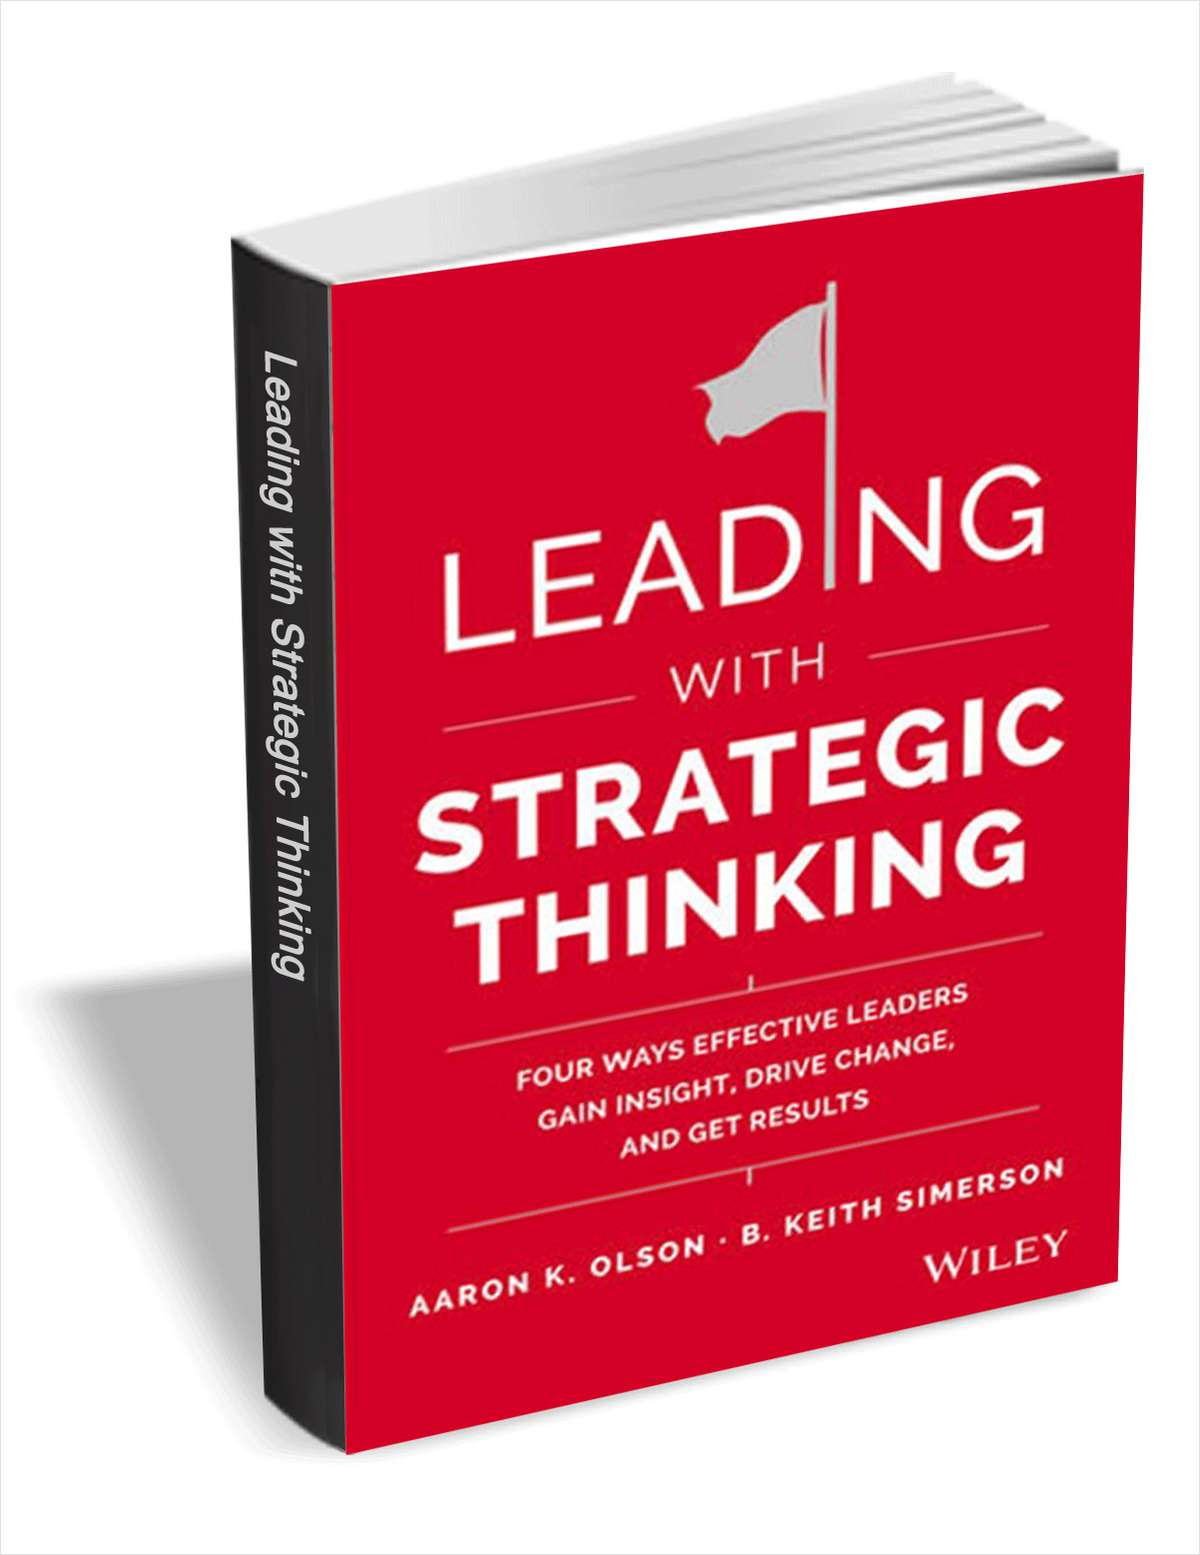 Leading With Strategic Thinking - Four Ways Effective Leaders Gain Insight, Drive Change, and Get Results ($16 Value) FREE For a Limited Time